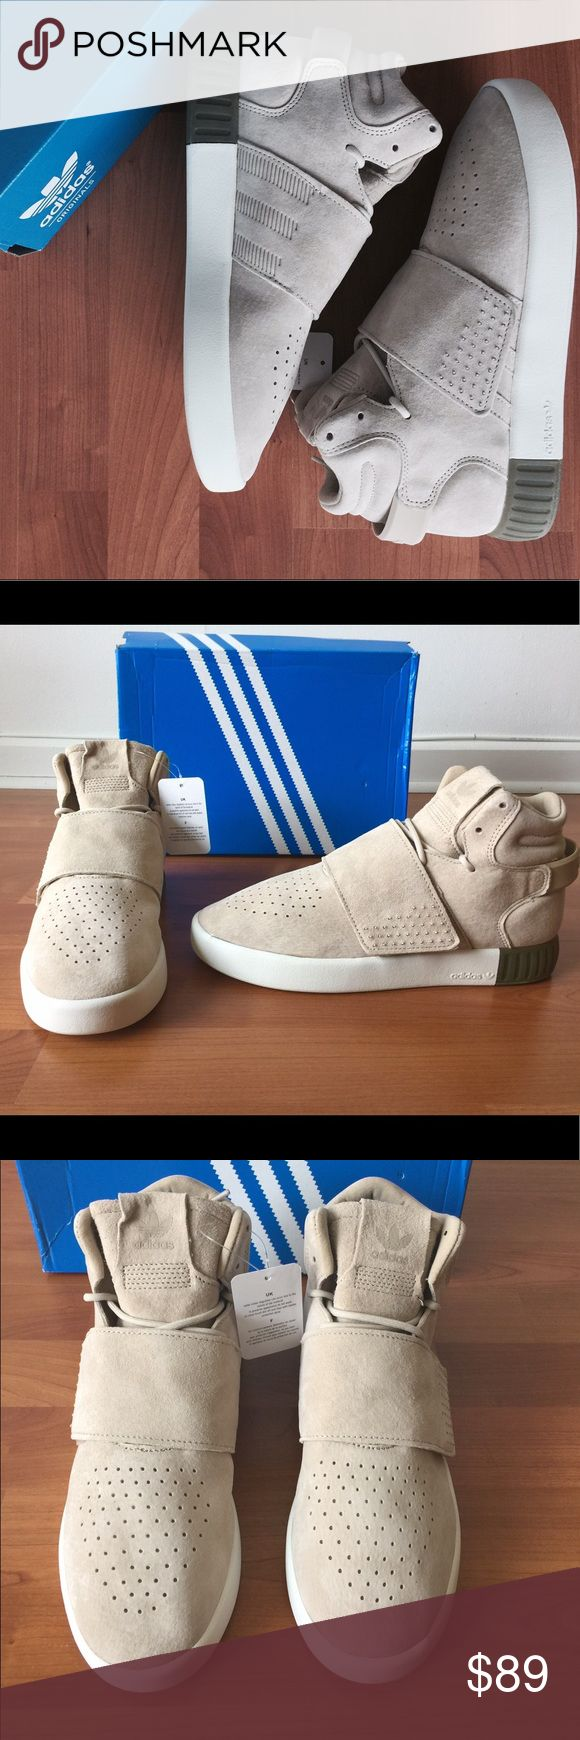 New Adidas Tubular Invader Strap Men's Sneakers New Men's Adidas Tubular Strap Sneakers. Various sizes. Women's and children sizes available upon request. Sizes are selling fast. 5 star ⭐️ rating. adidas Shoes Sneakers